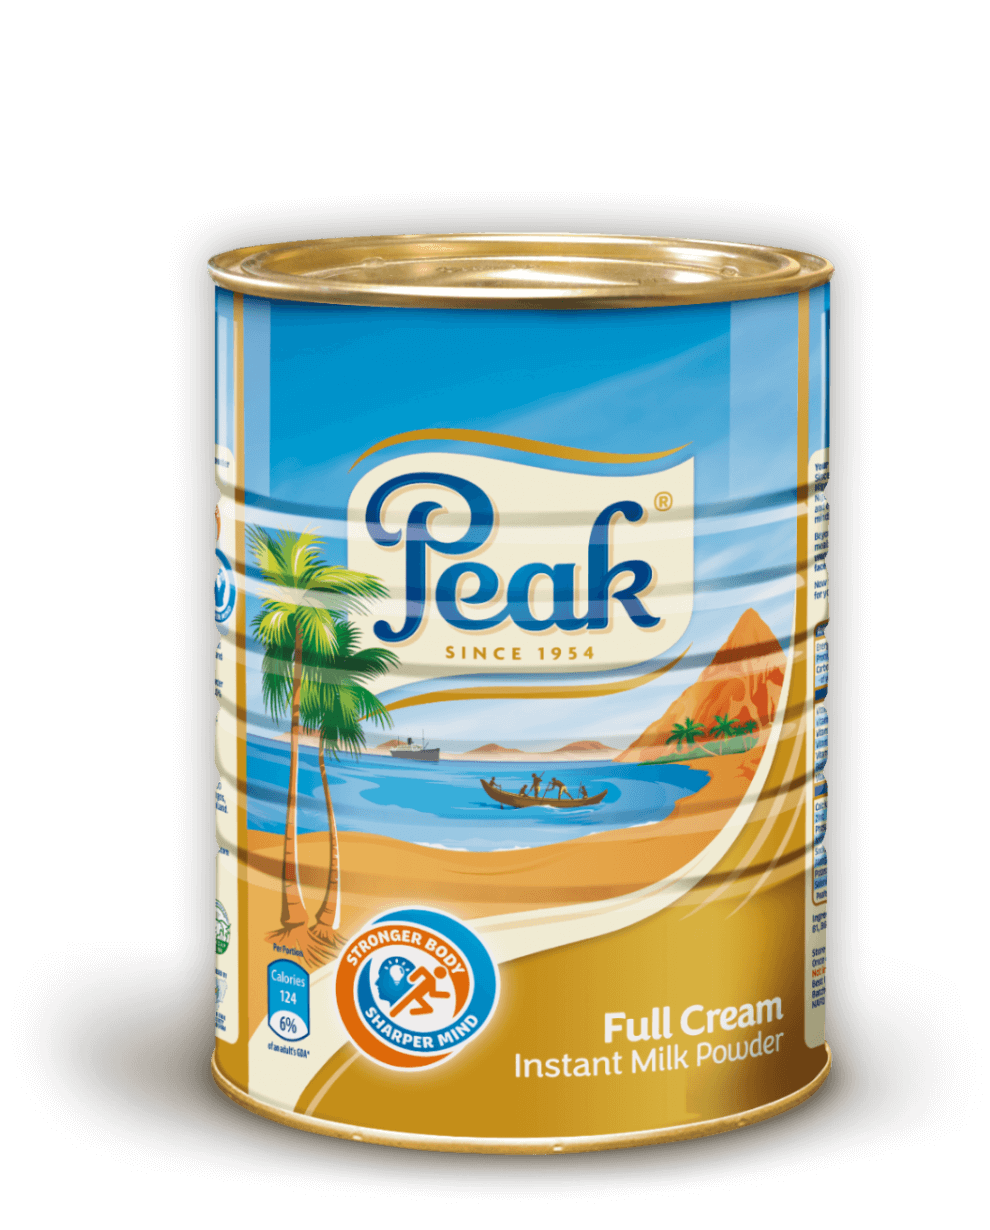 Peak Full Cream Instant Milk Powder Tin